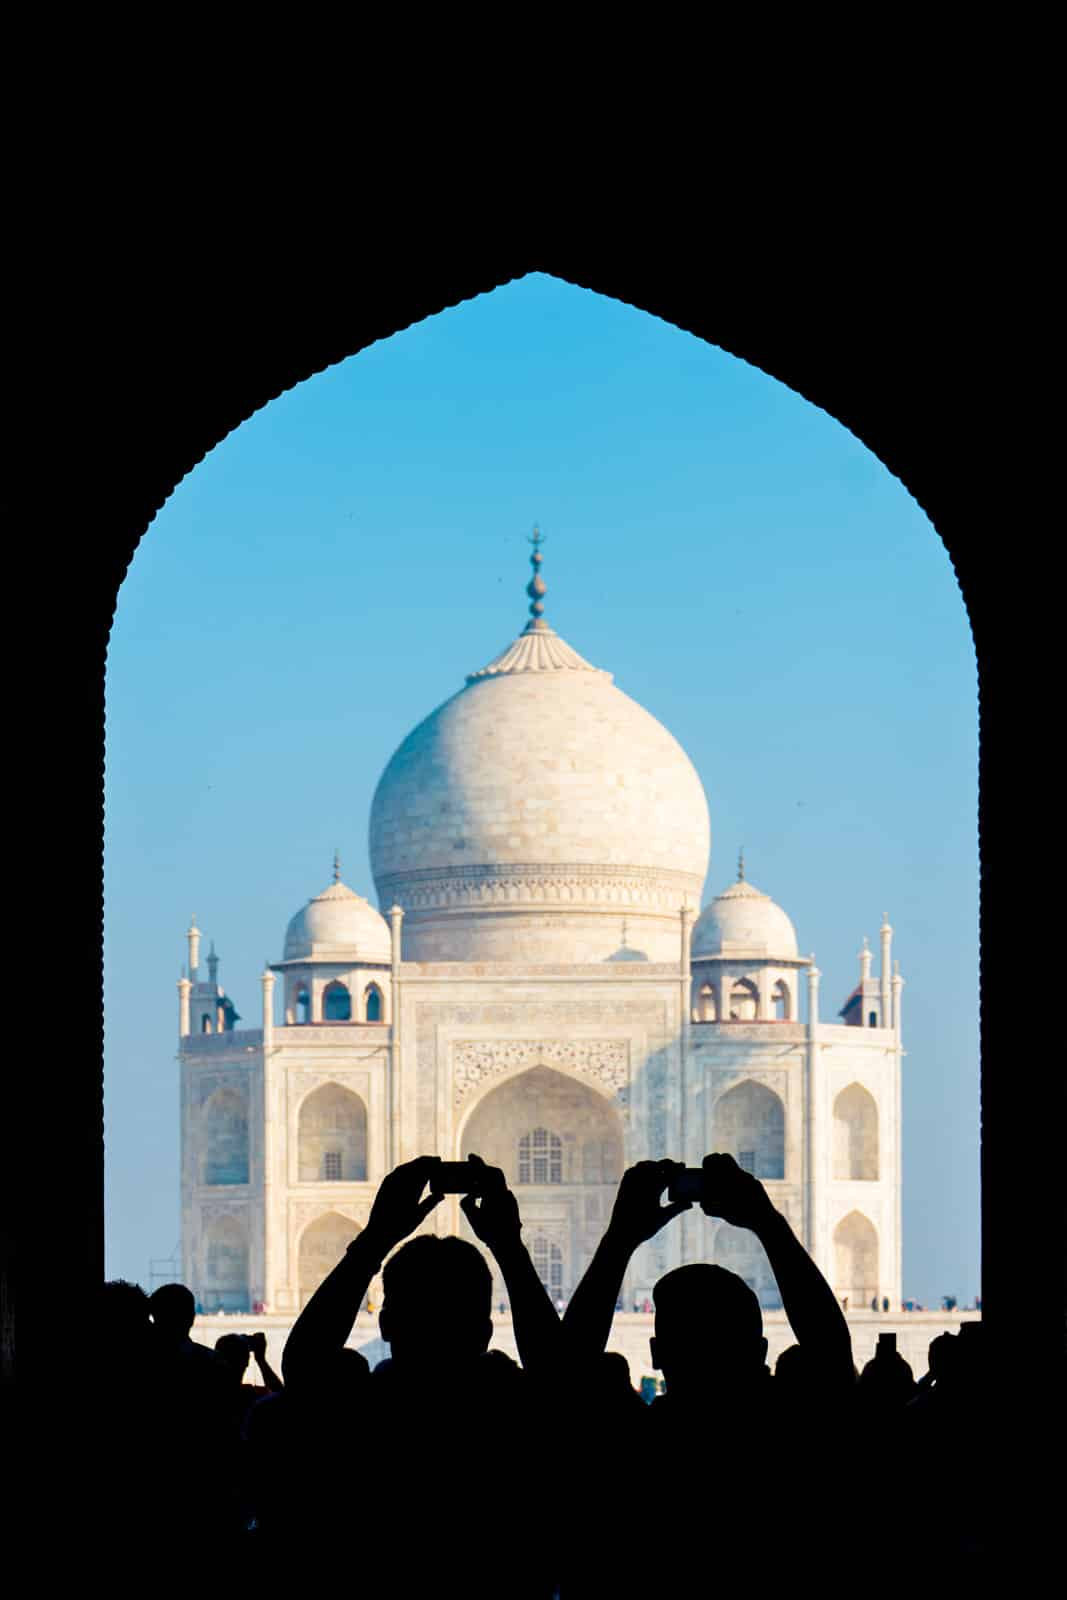 Ways of getting more off the beaten track while traveling - Tourists at the Taj Mahal in India - Lost With Purpose travel blog